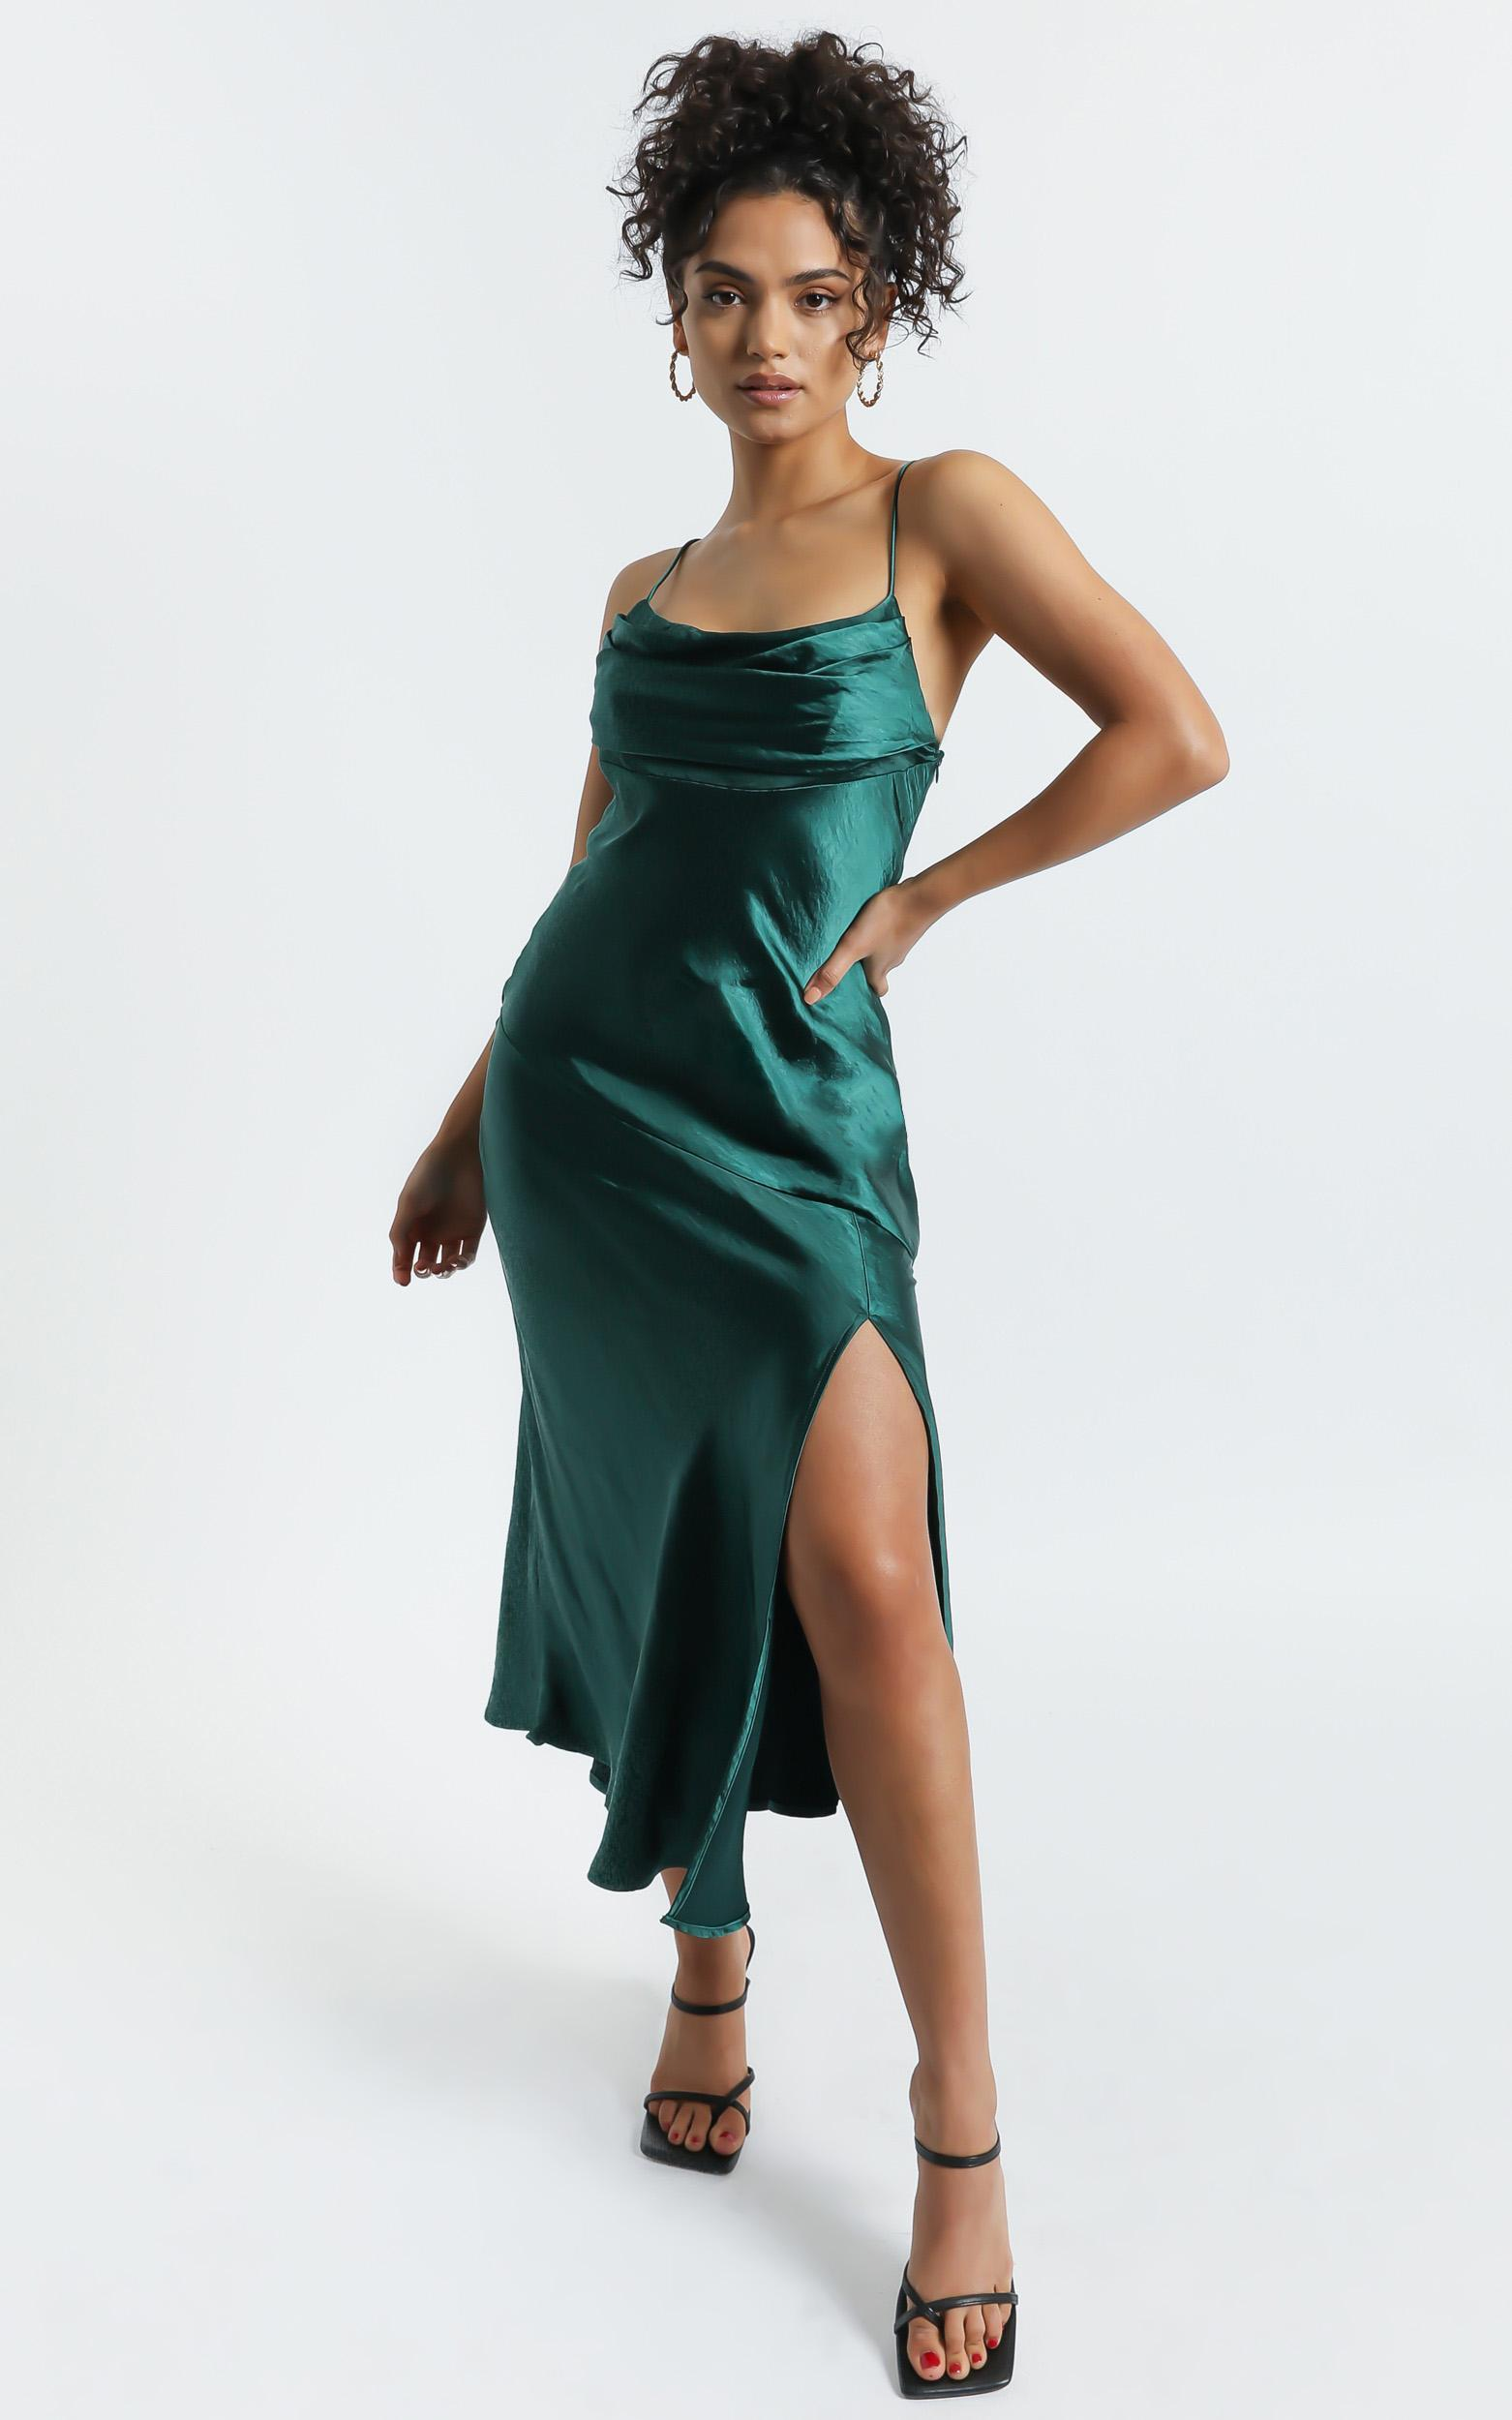 Monica Dress In Emerald Satin - 6 (XS), Green, hi-res image number null